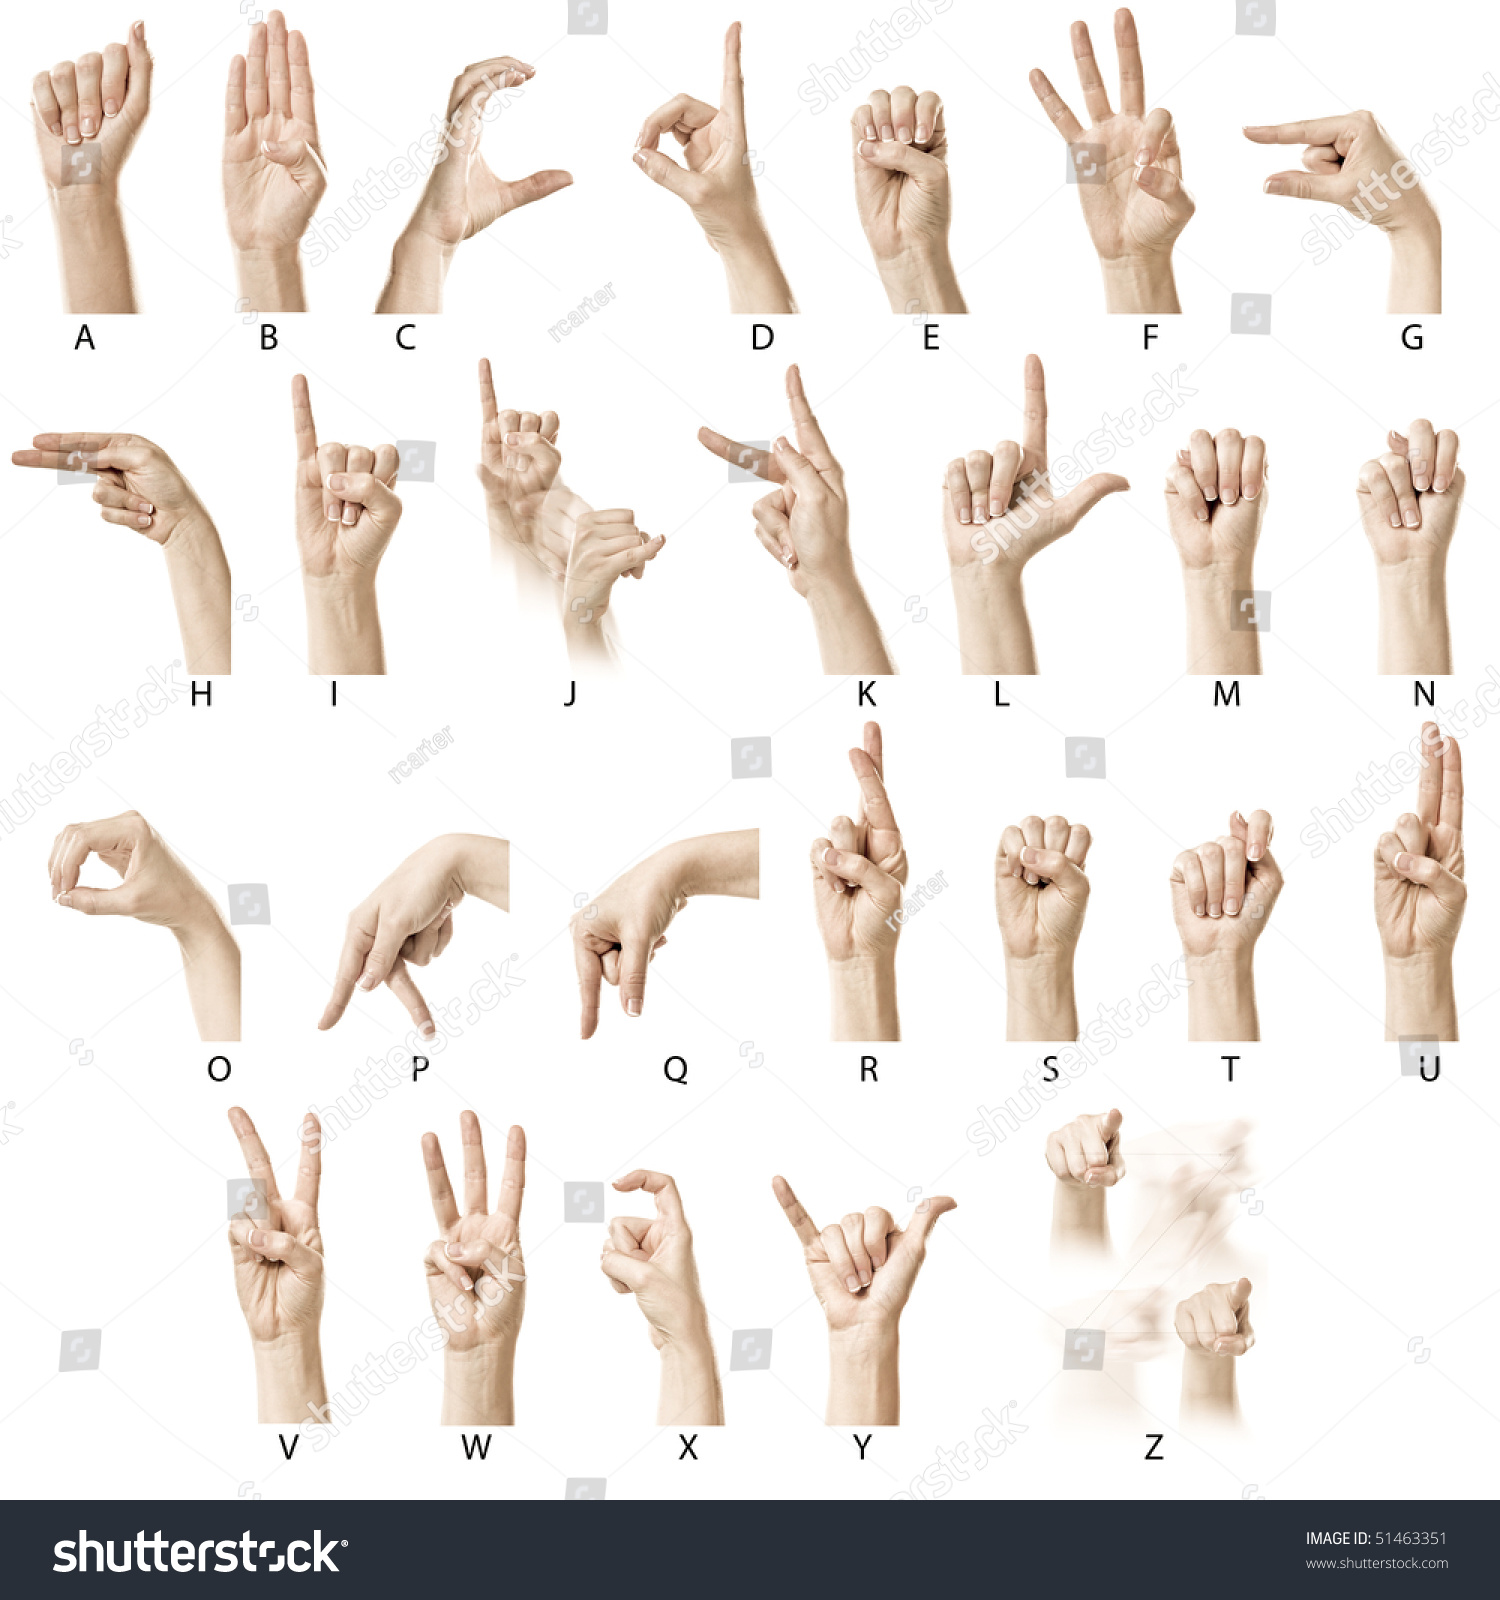 stock-photo-finger-spelling-the-alphabet-in-american-sign-language-asl-51463351.jpg